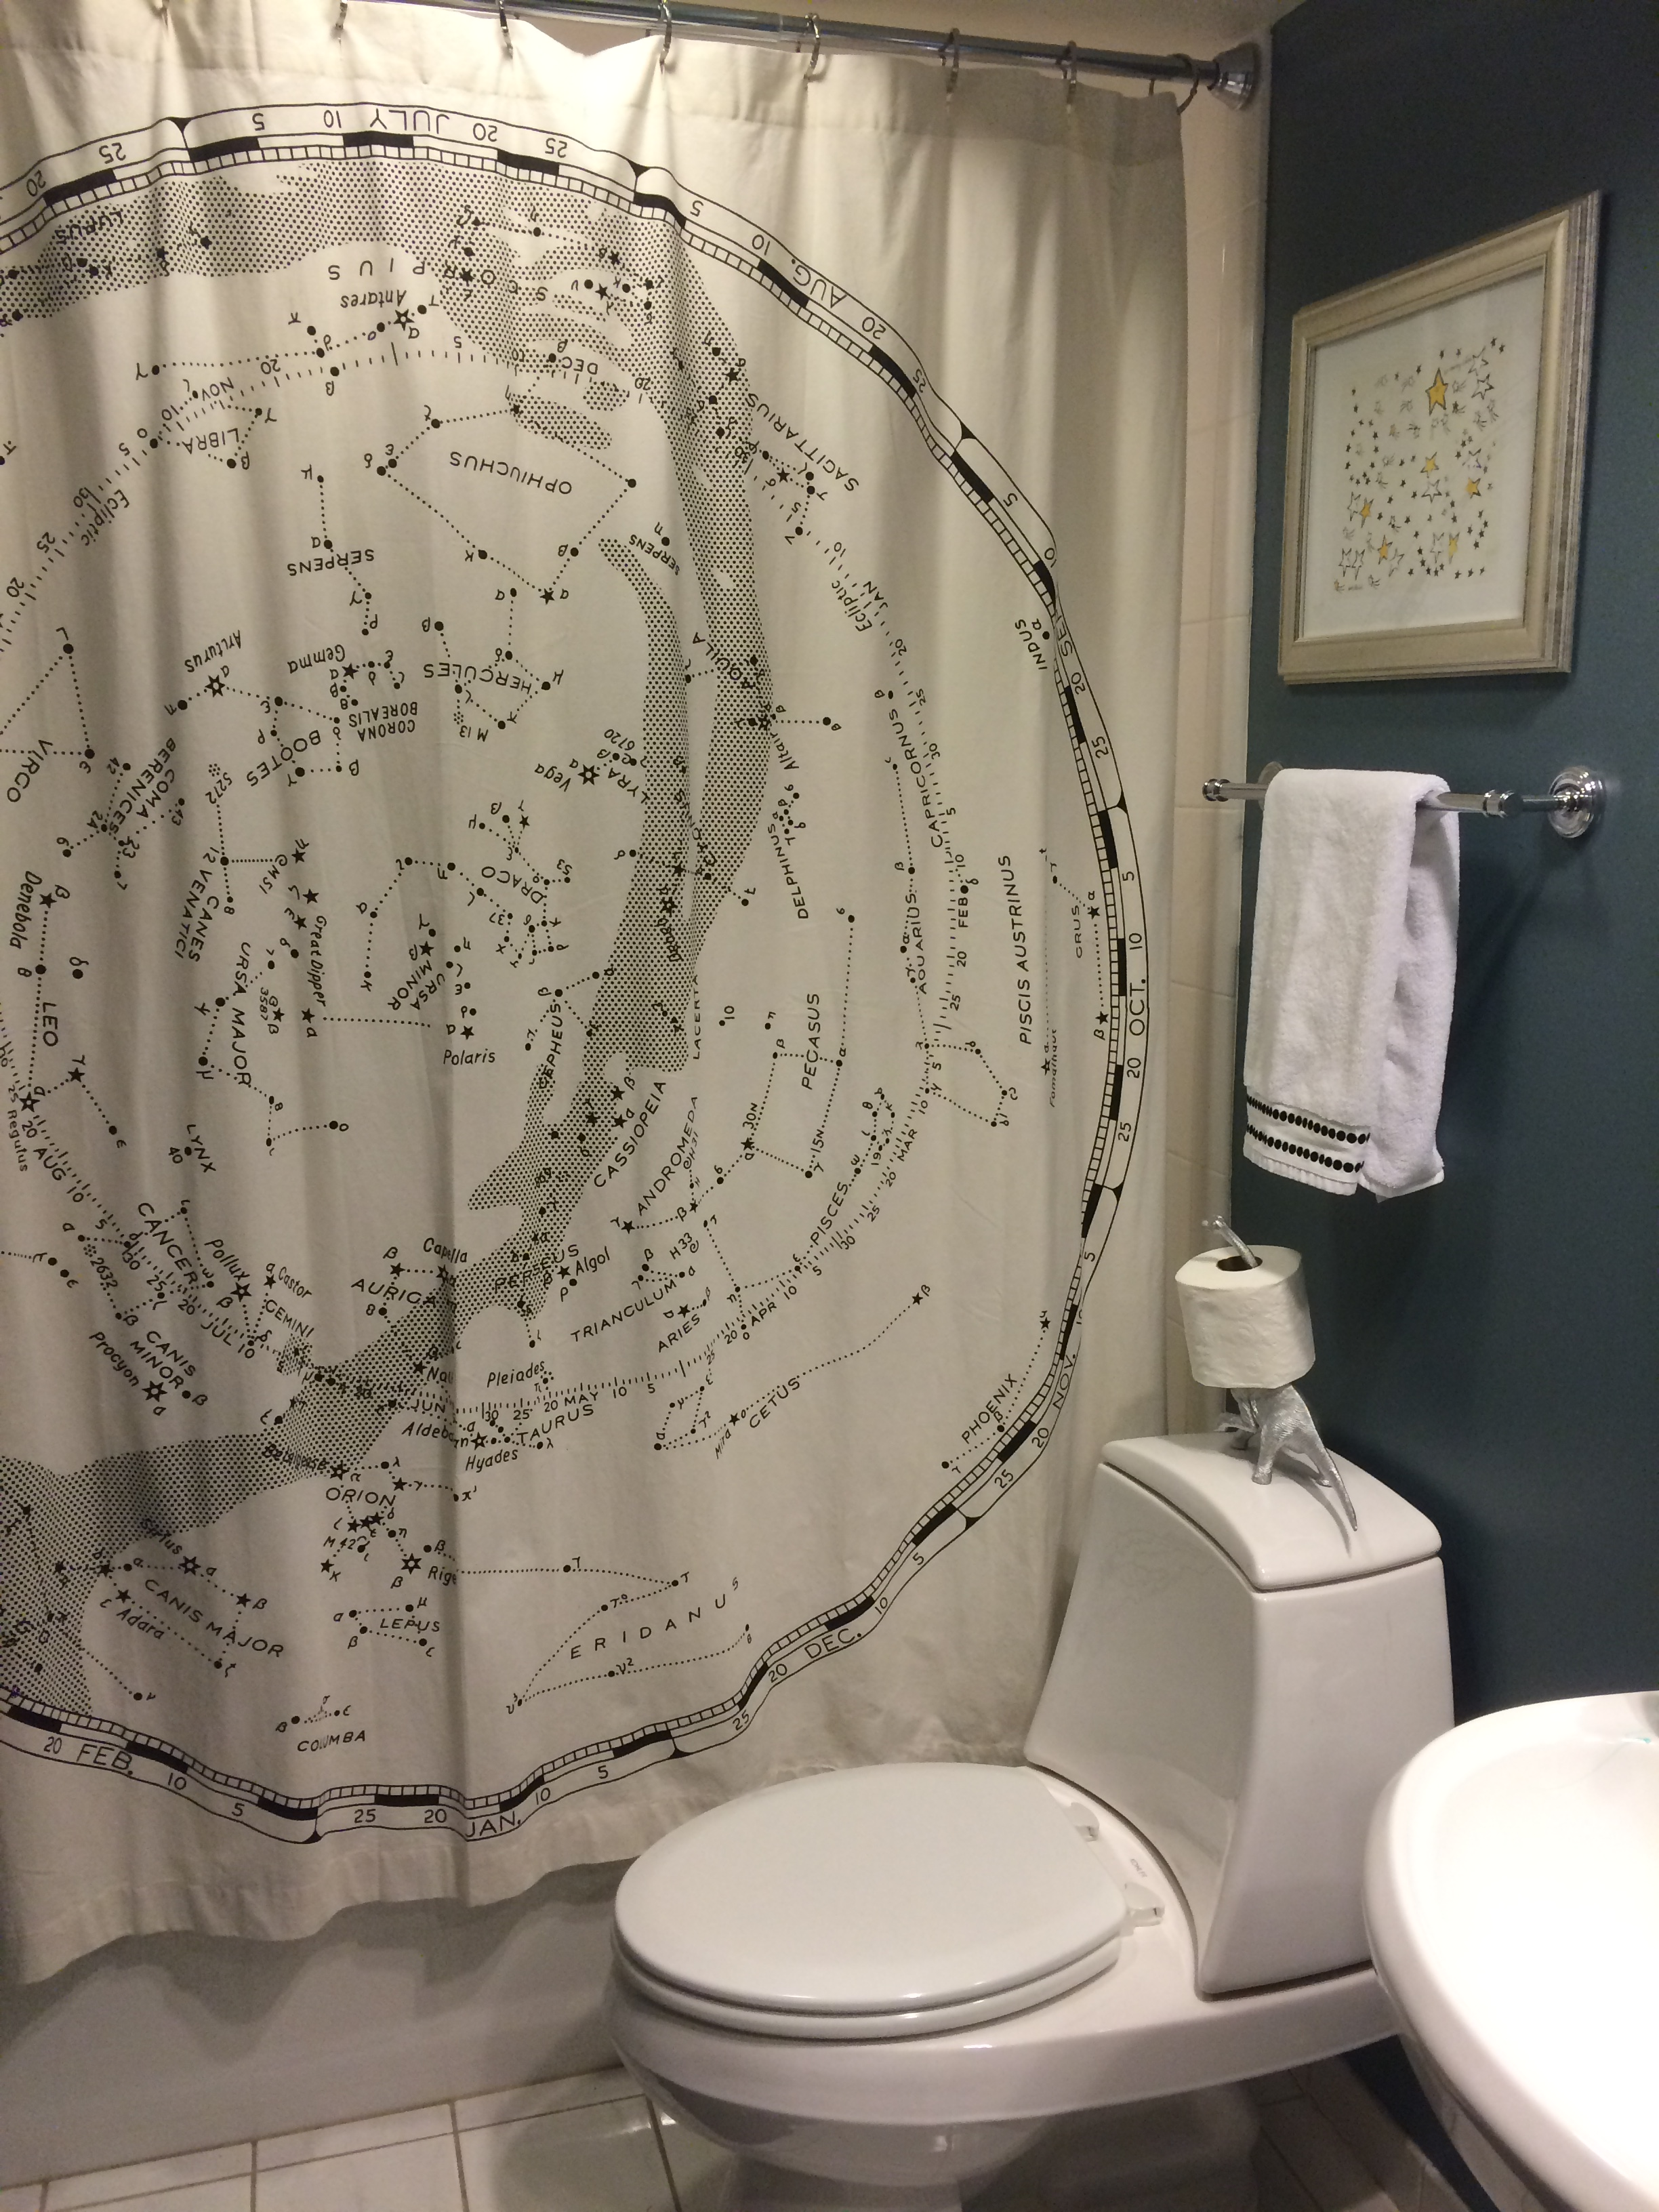 The Shower Curtain Came From Urban Outfitters I Chose These Pottery Barn Towels Because Dots Coordinated With Constellation In